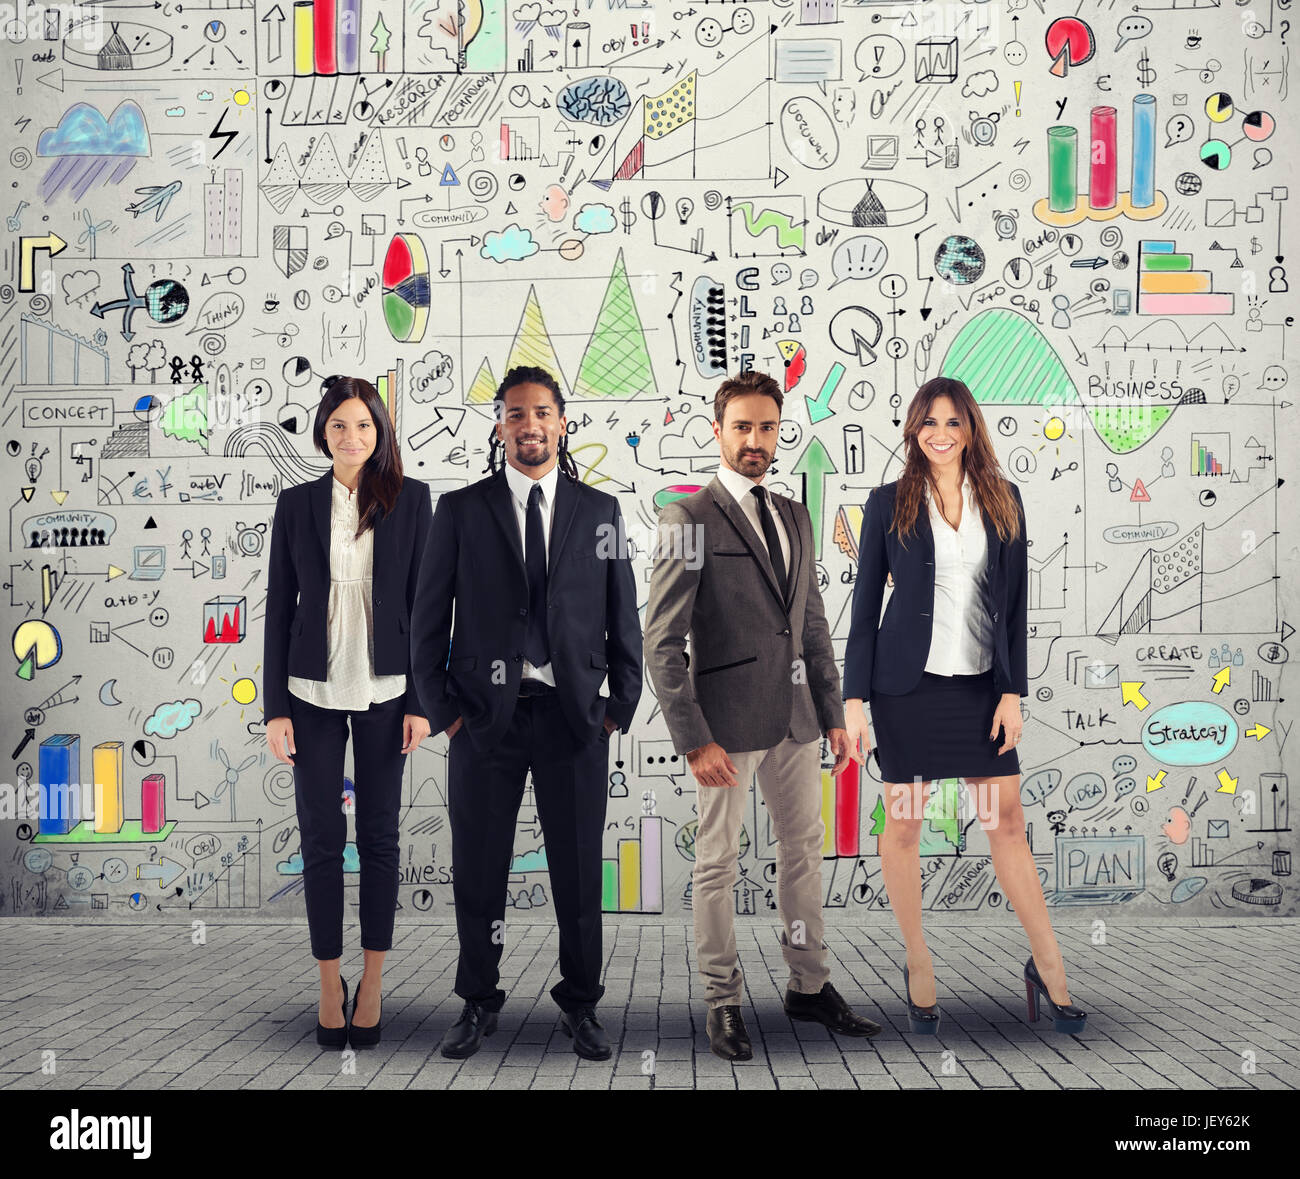 Group of successful men and women business people work on a creative project. Team and corporate concept - Stock Image